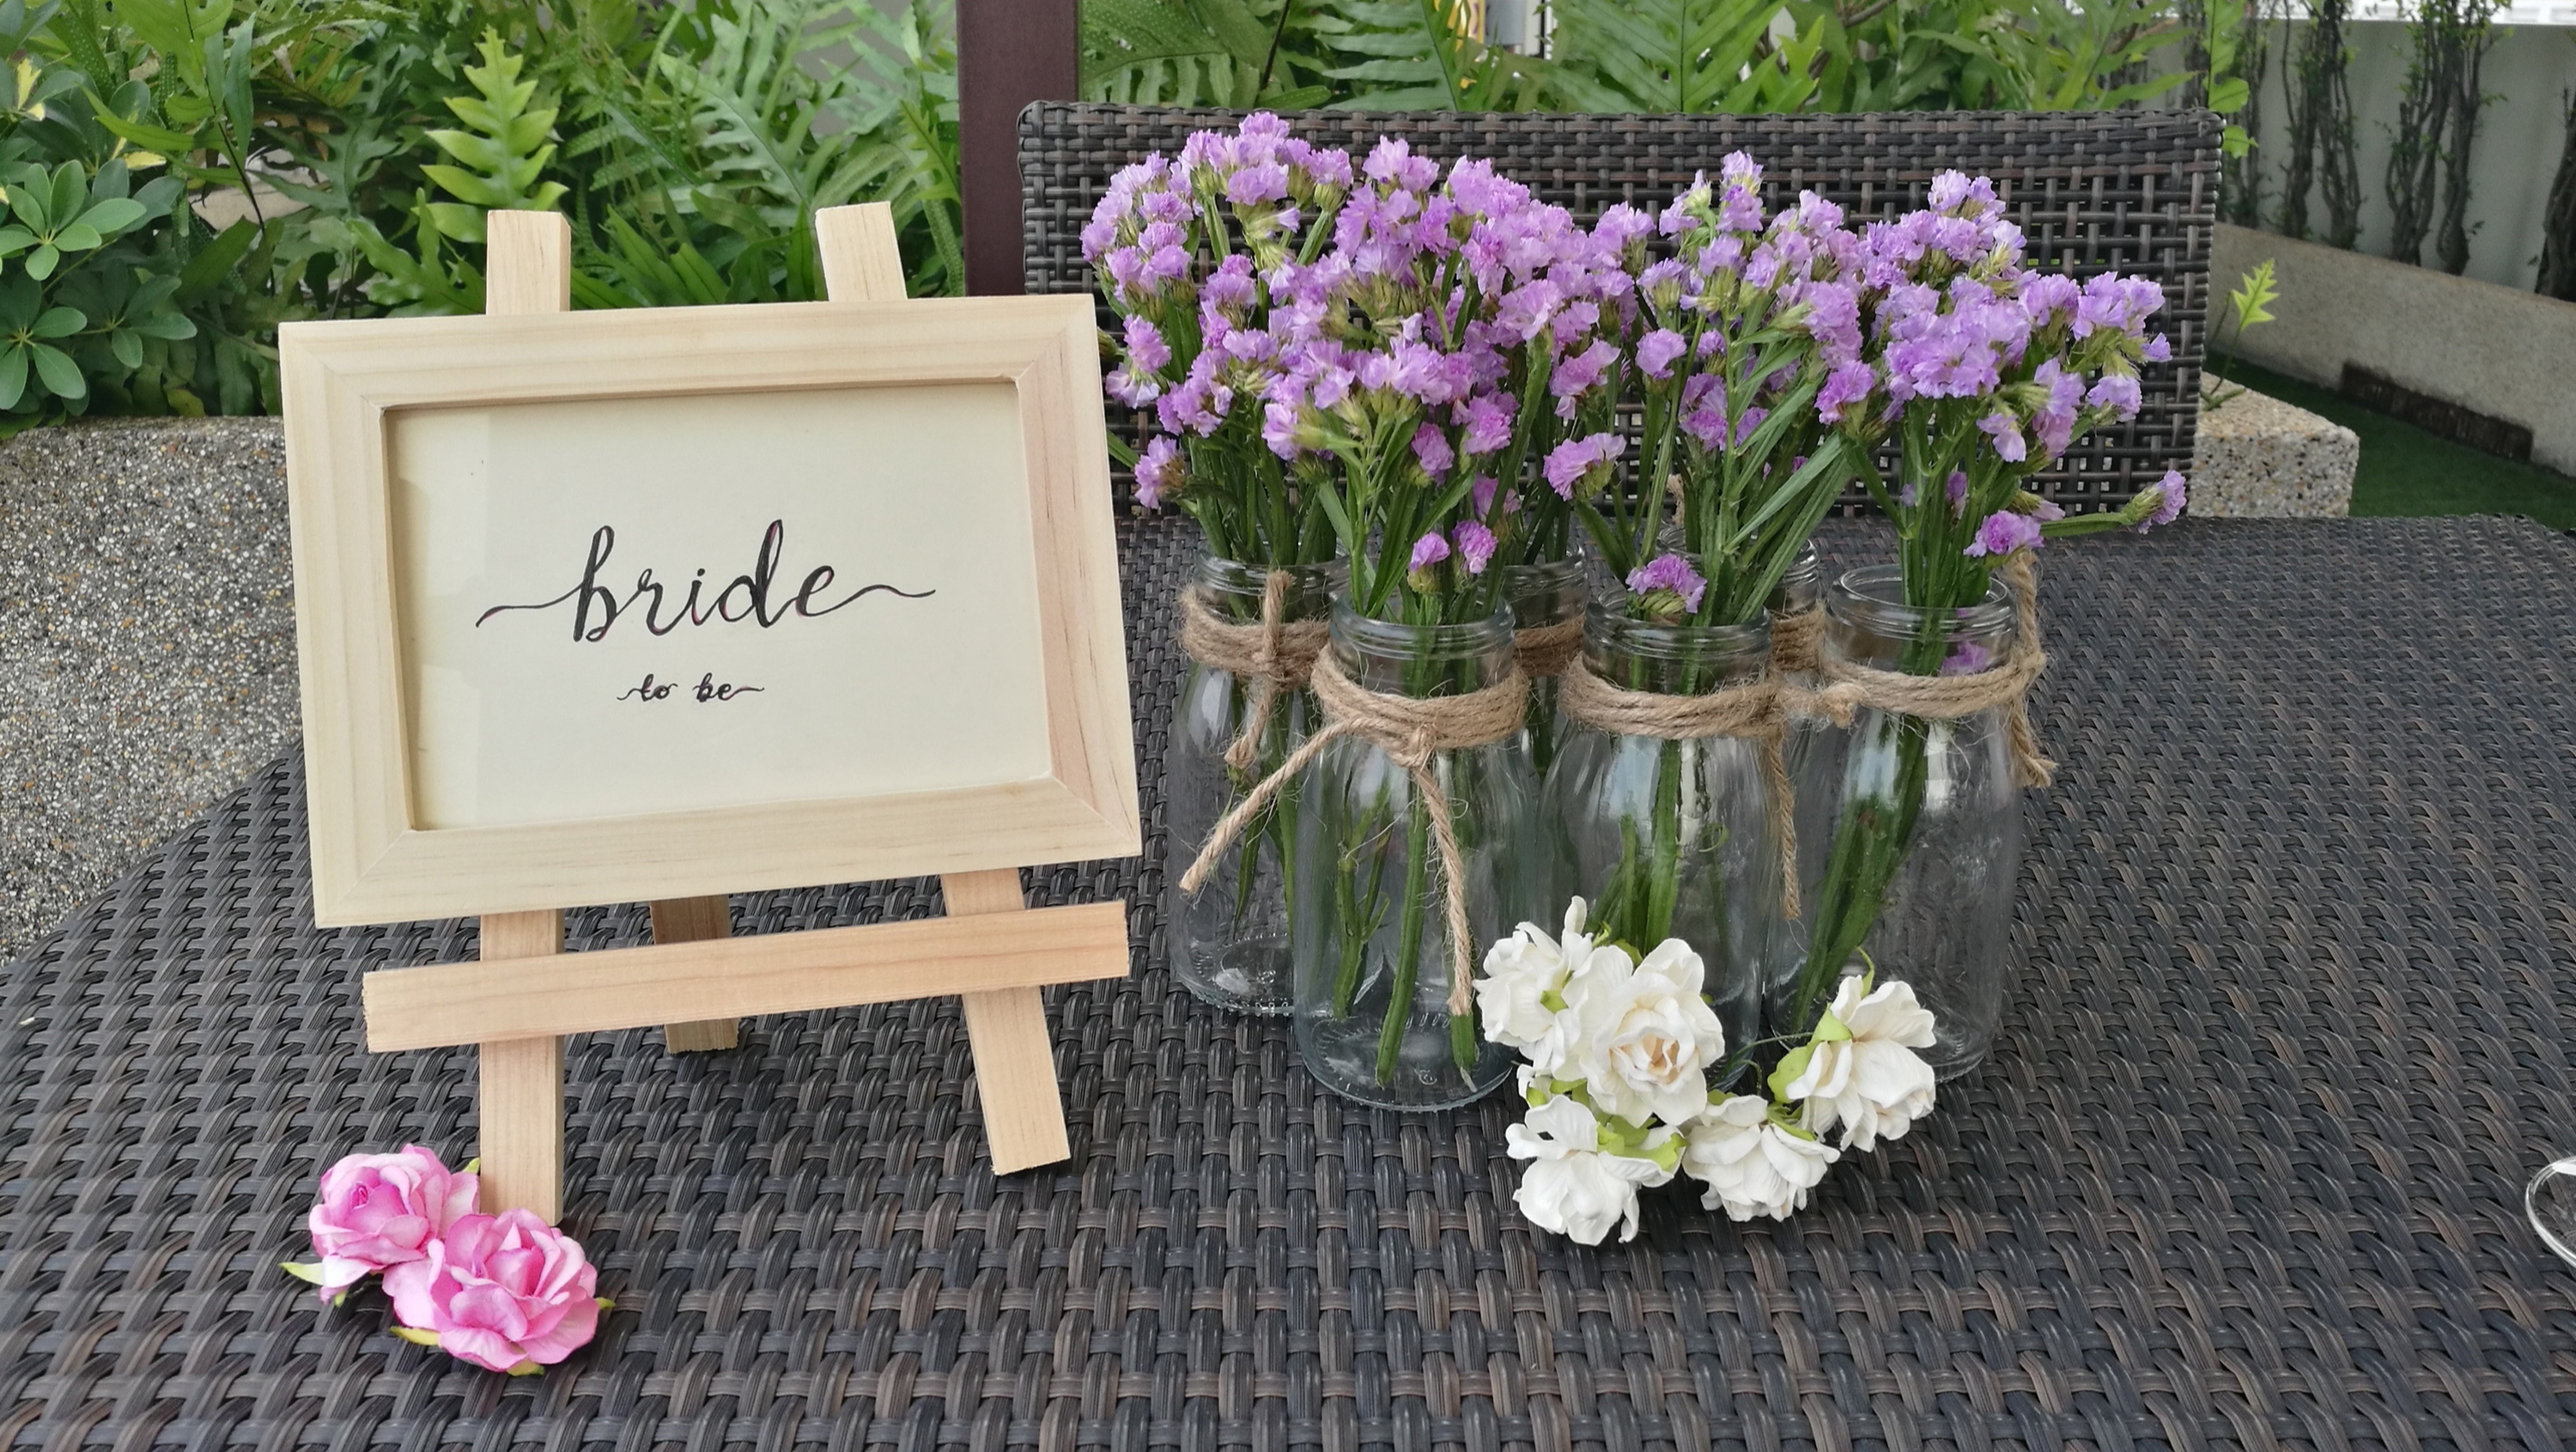 garden bridal shower | bridal shower | shower | garden | bridal shower ideas | bridal shower themes | themes